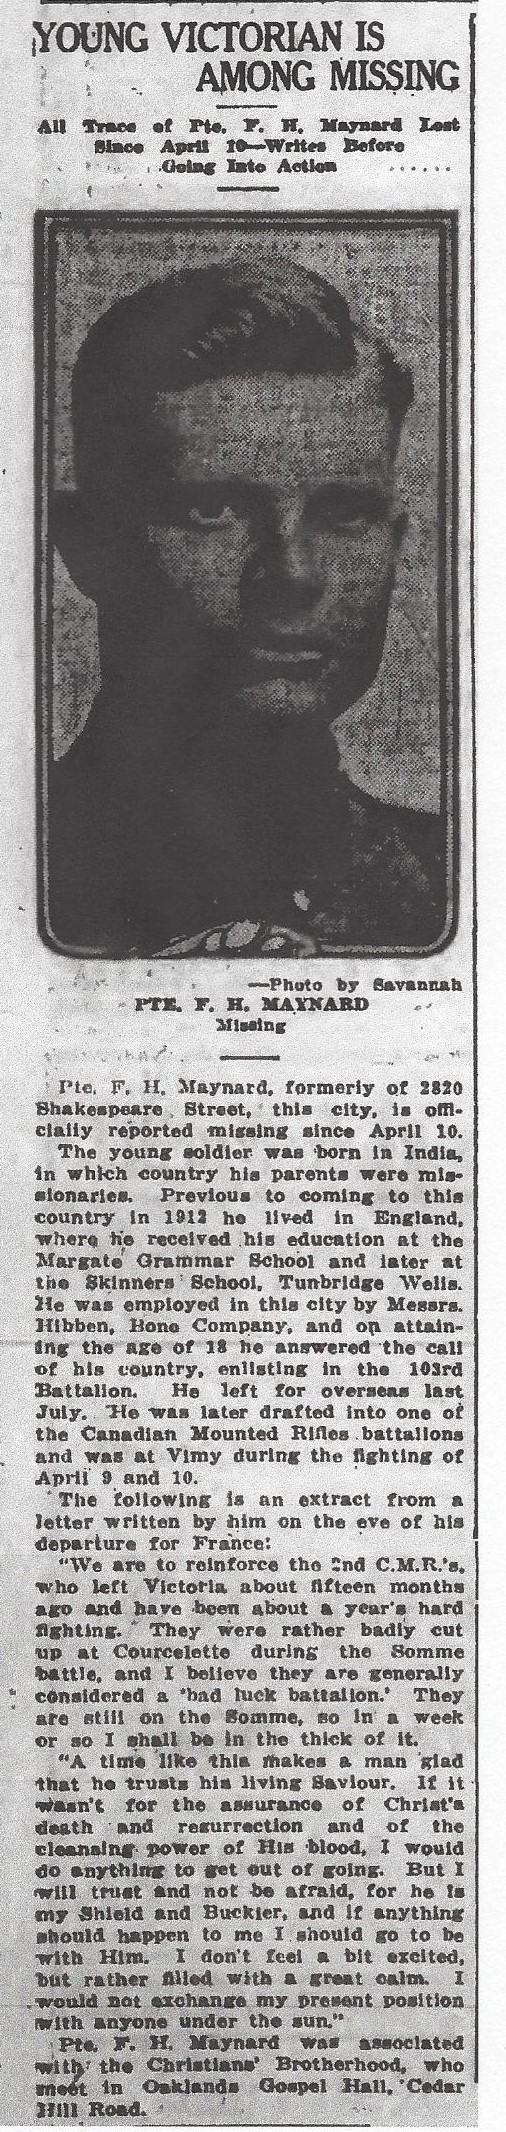 Newspaper clipping – From the Daily Colonist of May 1, 1917. Image taken from web address of http://archive.org/stream/dailycolonist59y122uvic#page/n0/mode/1up